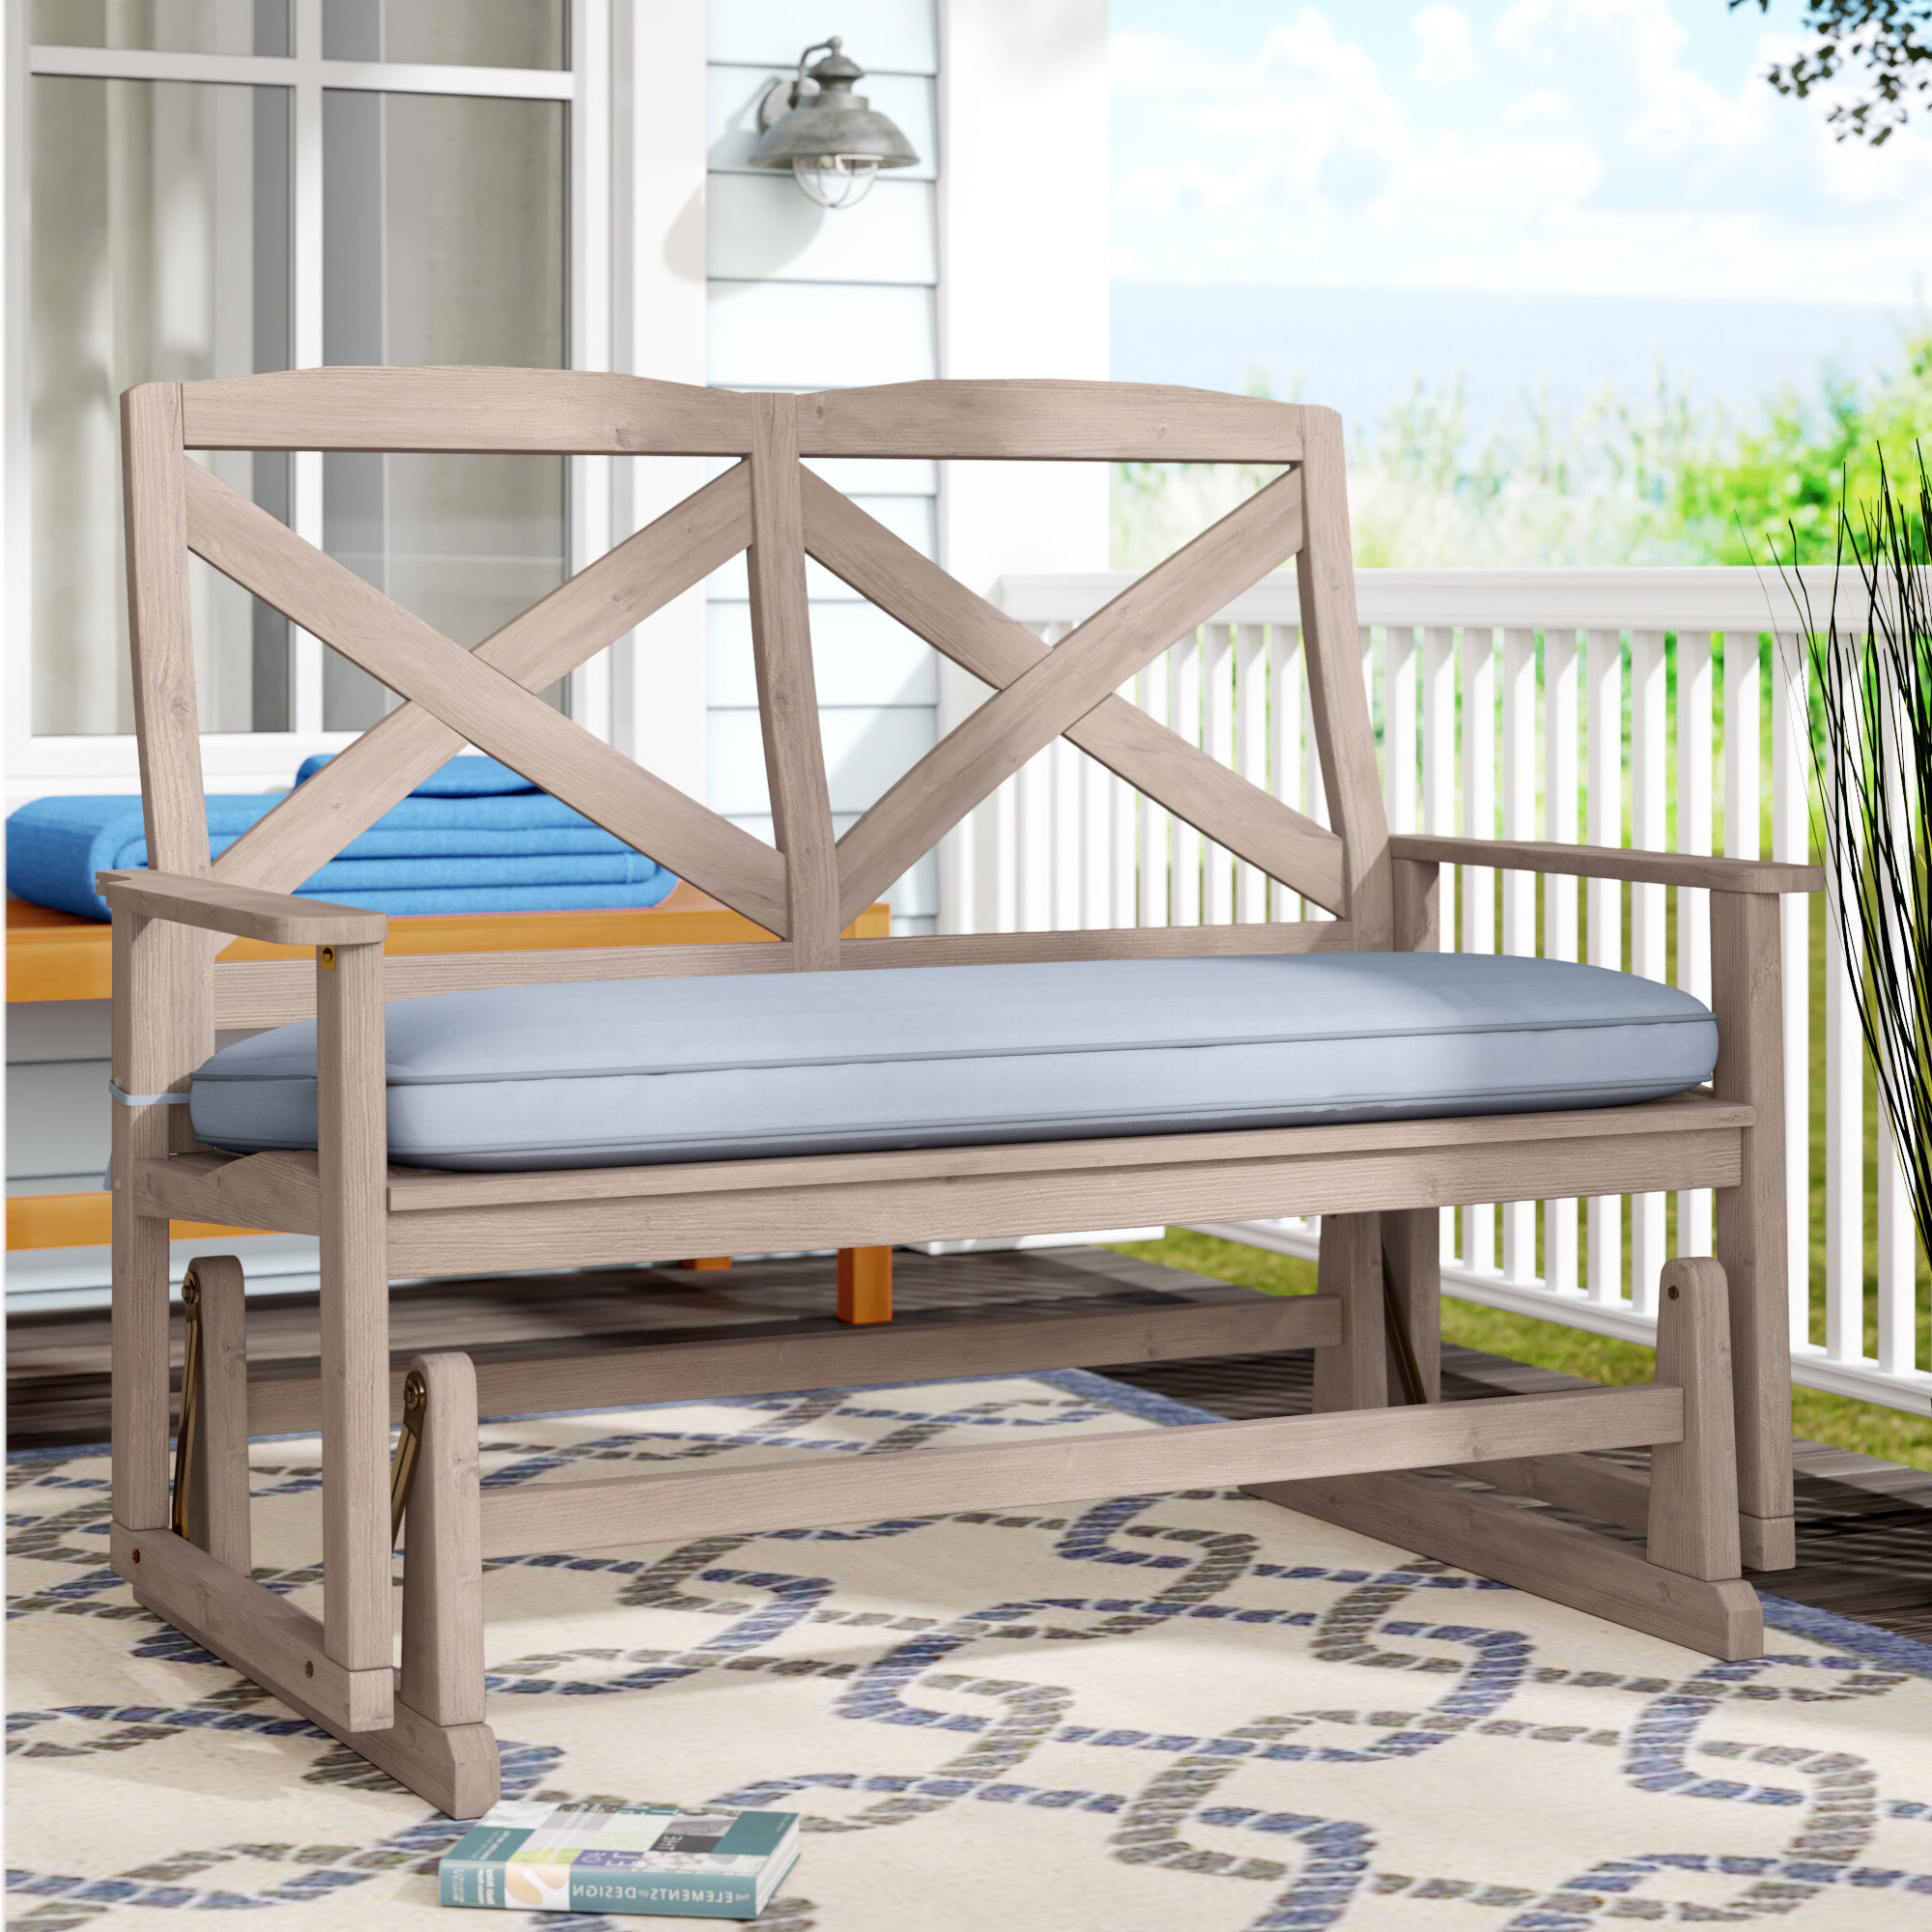 Englewood Glider Bench With Cushion In Well Known Glider Benches With Cushion (View 7 of 30)